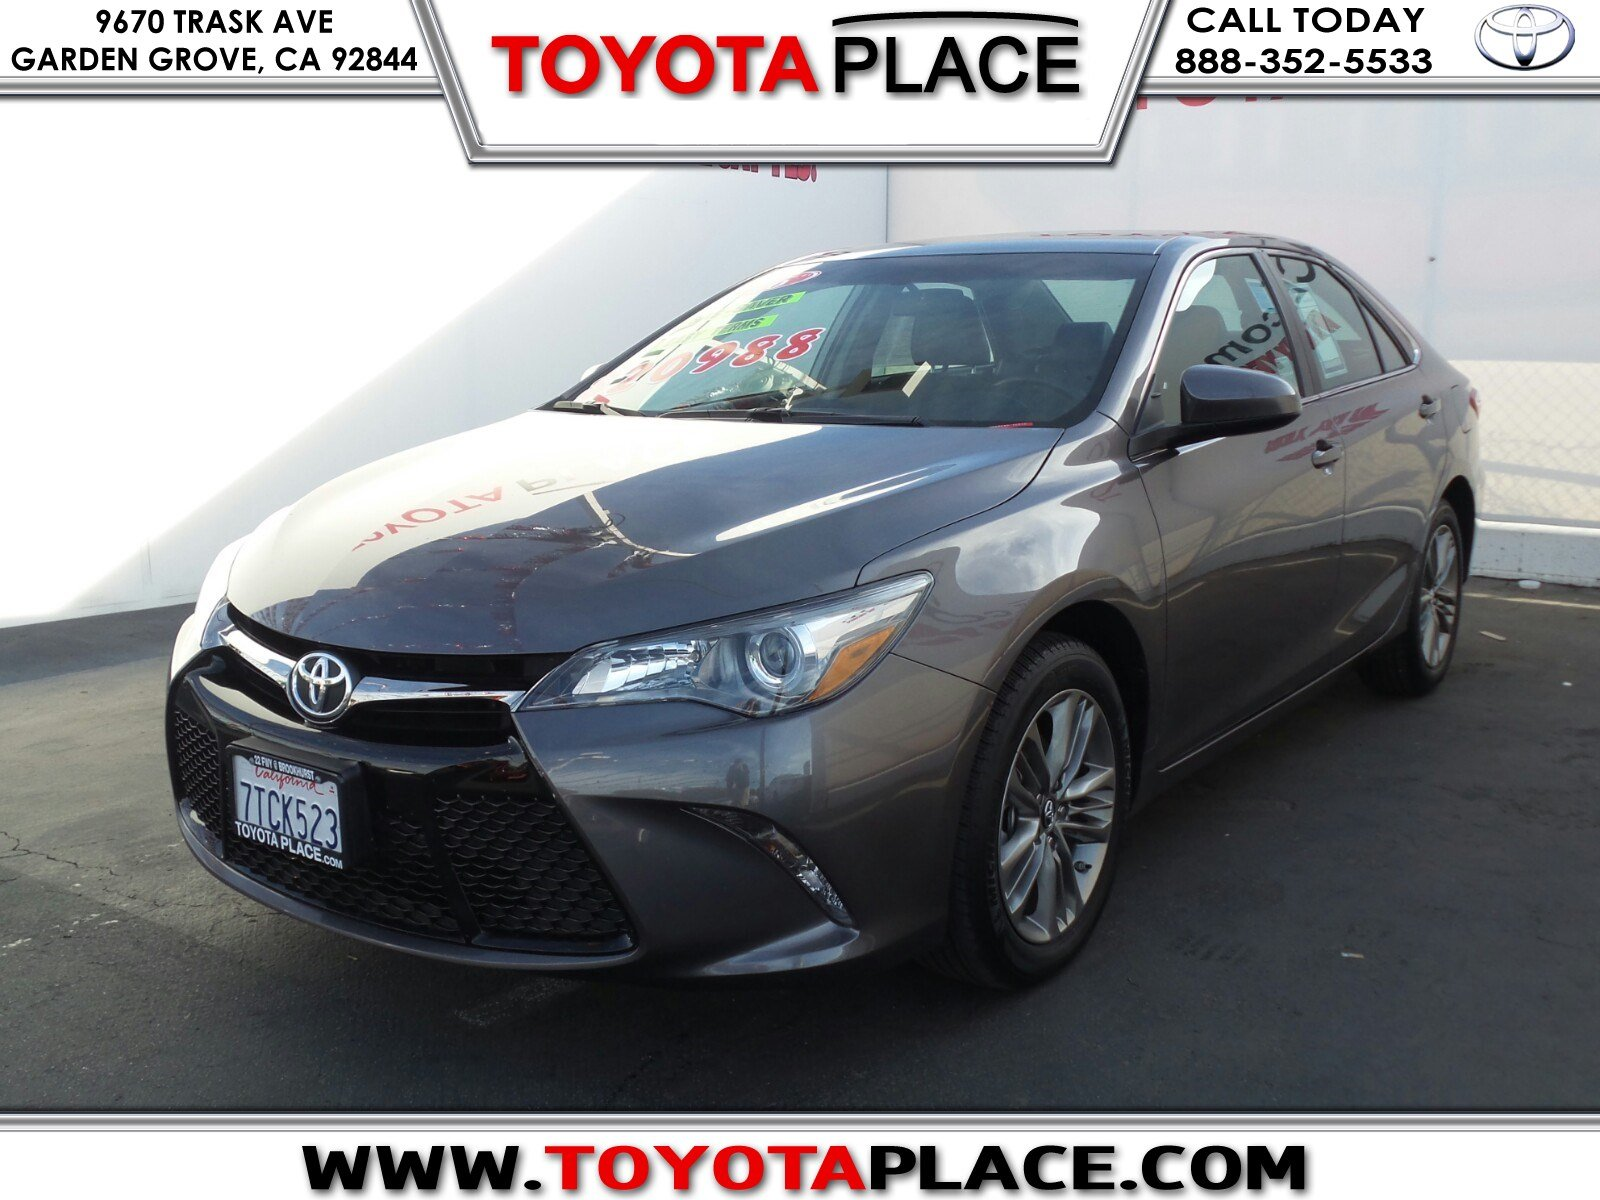 pre owned 2016 toyota camry se 4dr car in garden grove r242637 toyota place. Black Bedroom Furniture Sets. Home Design Ideas